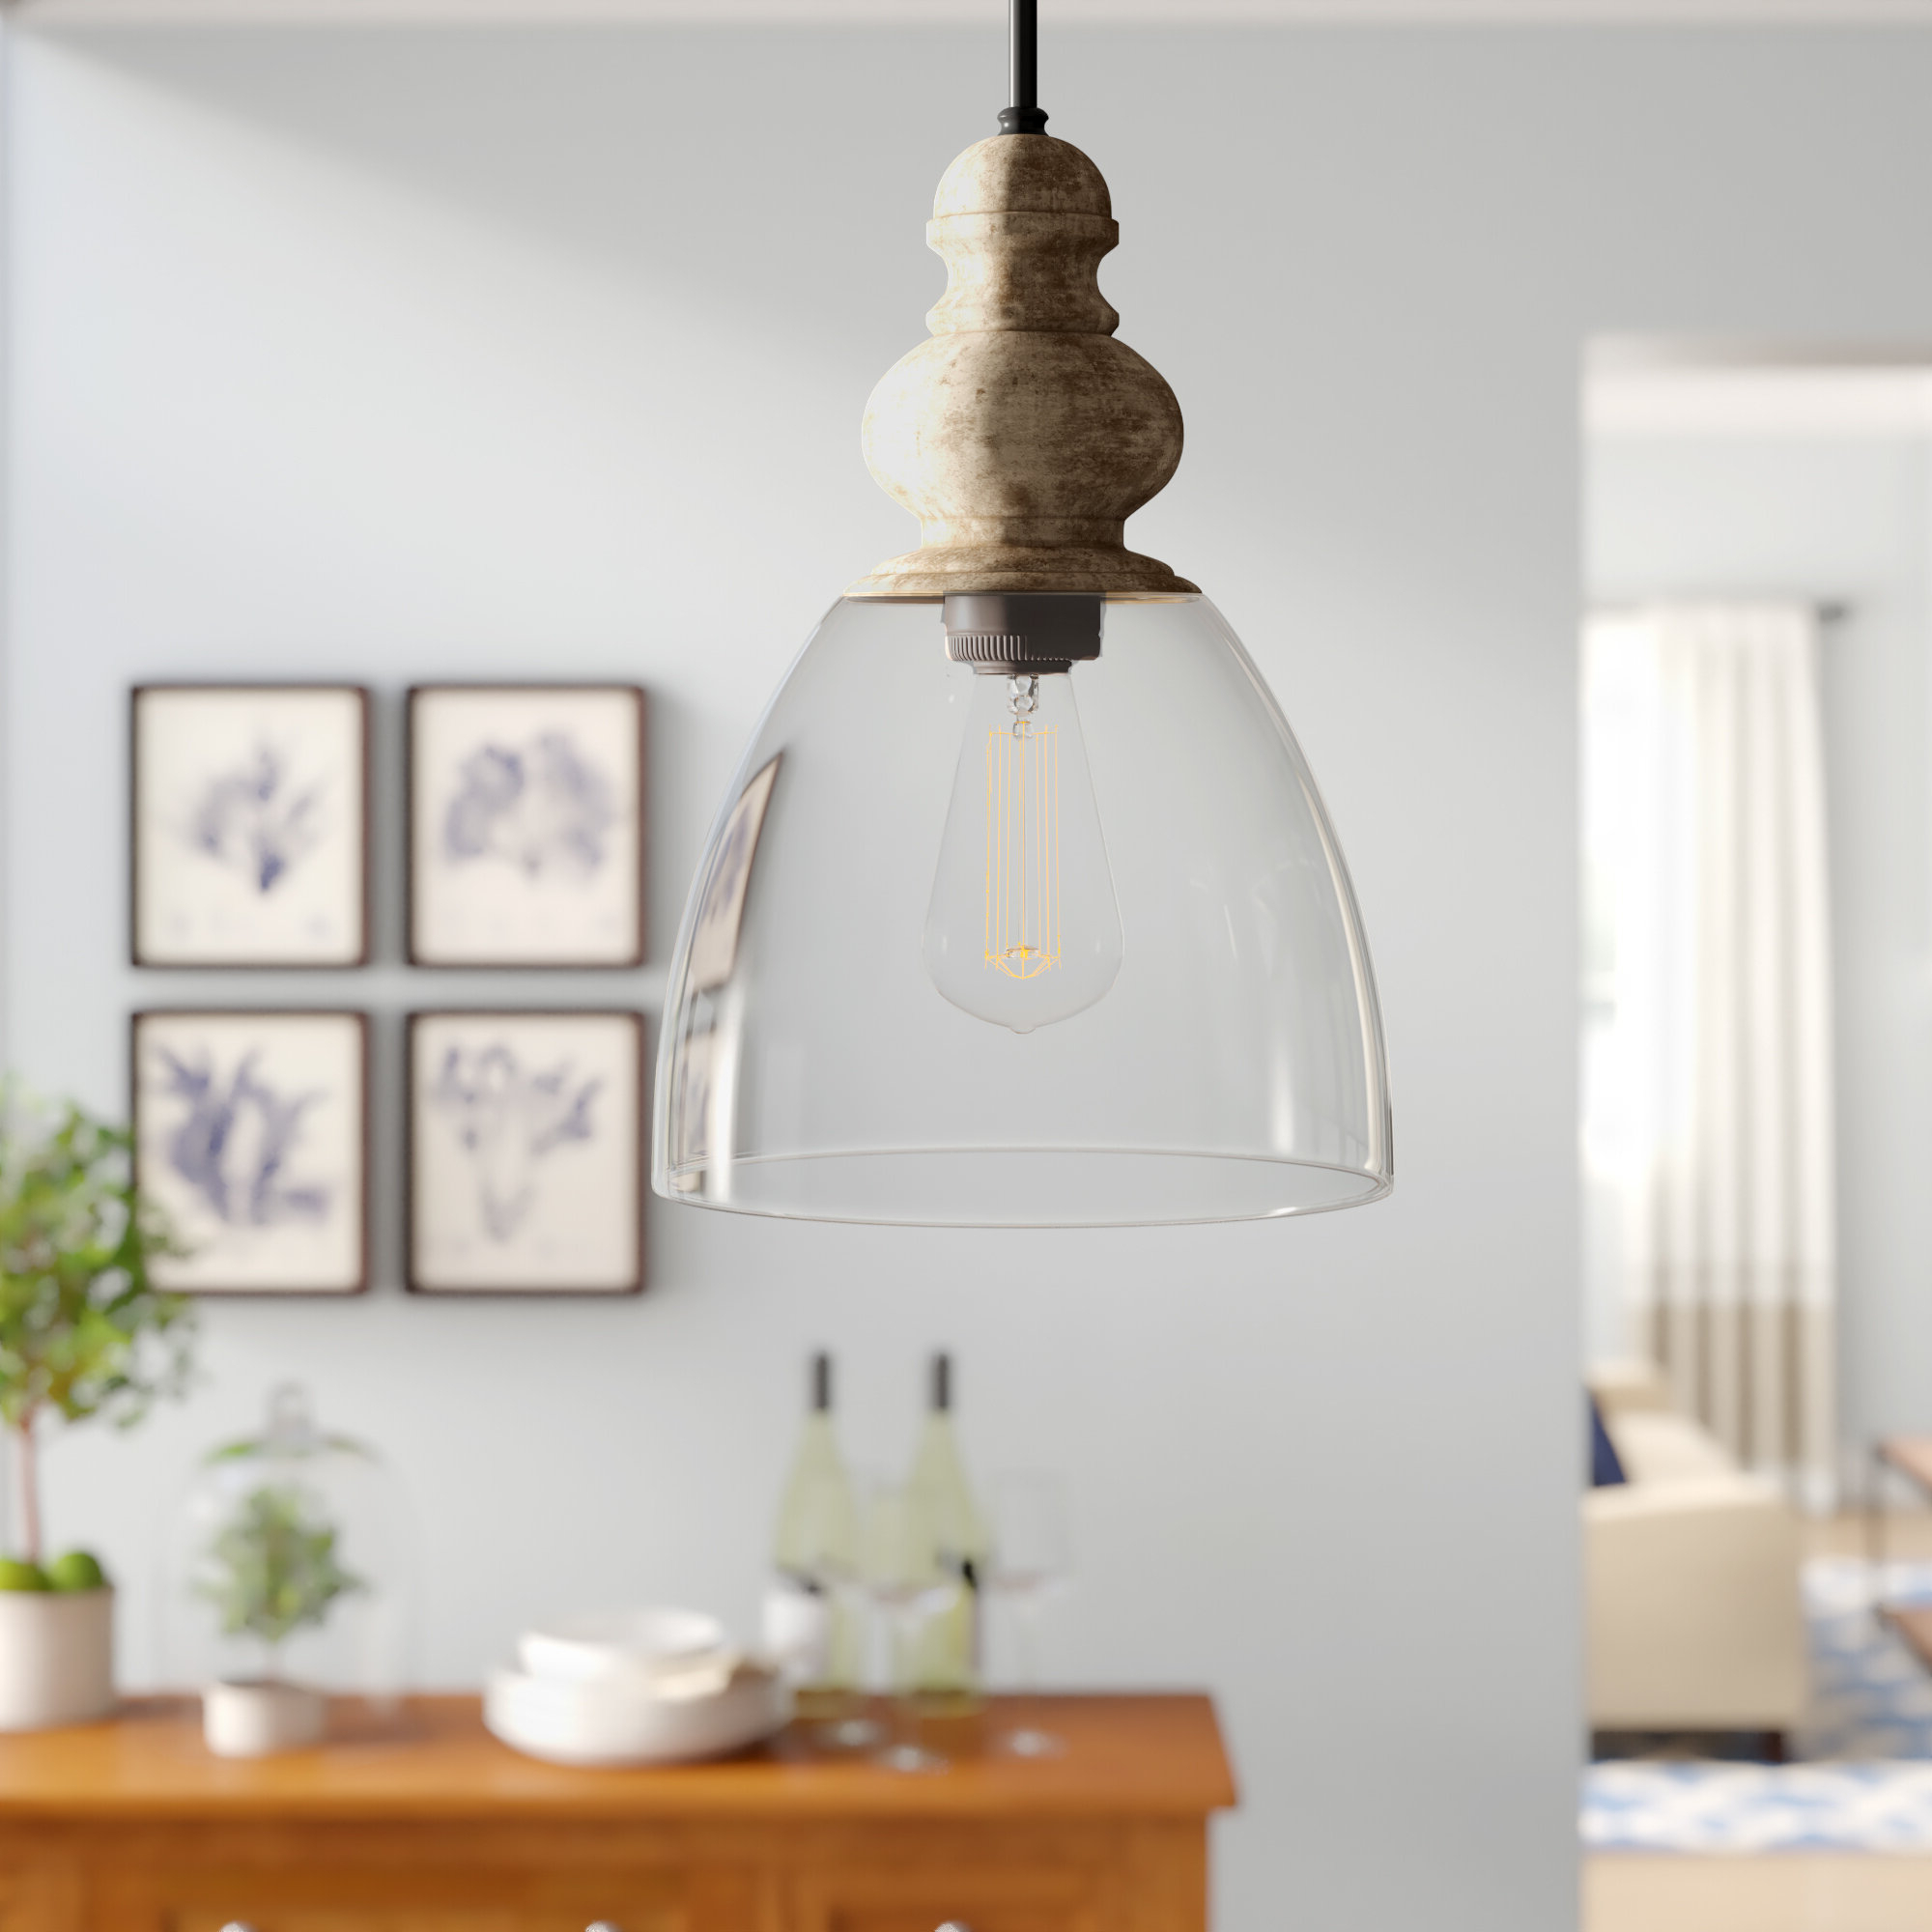 Favorite Wentzville 1 Light Single Bell Pendants Regarding Laurel Foundry Modern Farmhouse Lemelle 1 Light Single Bell Pendant (View 4 of 20)